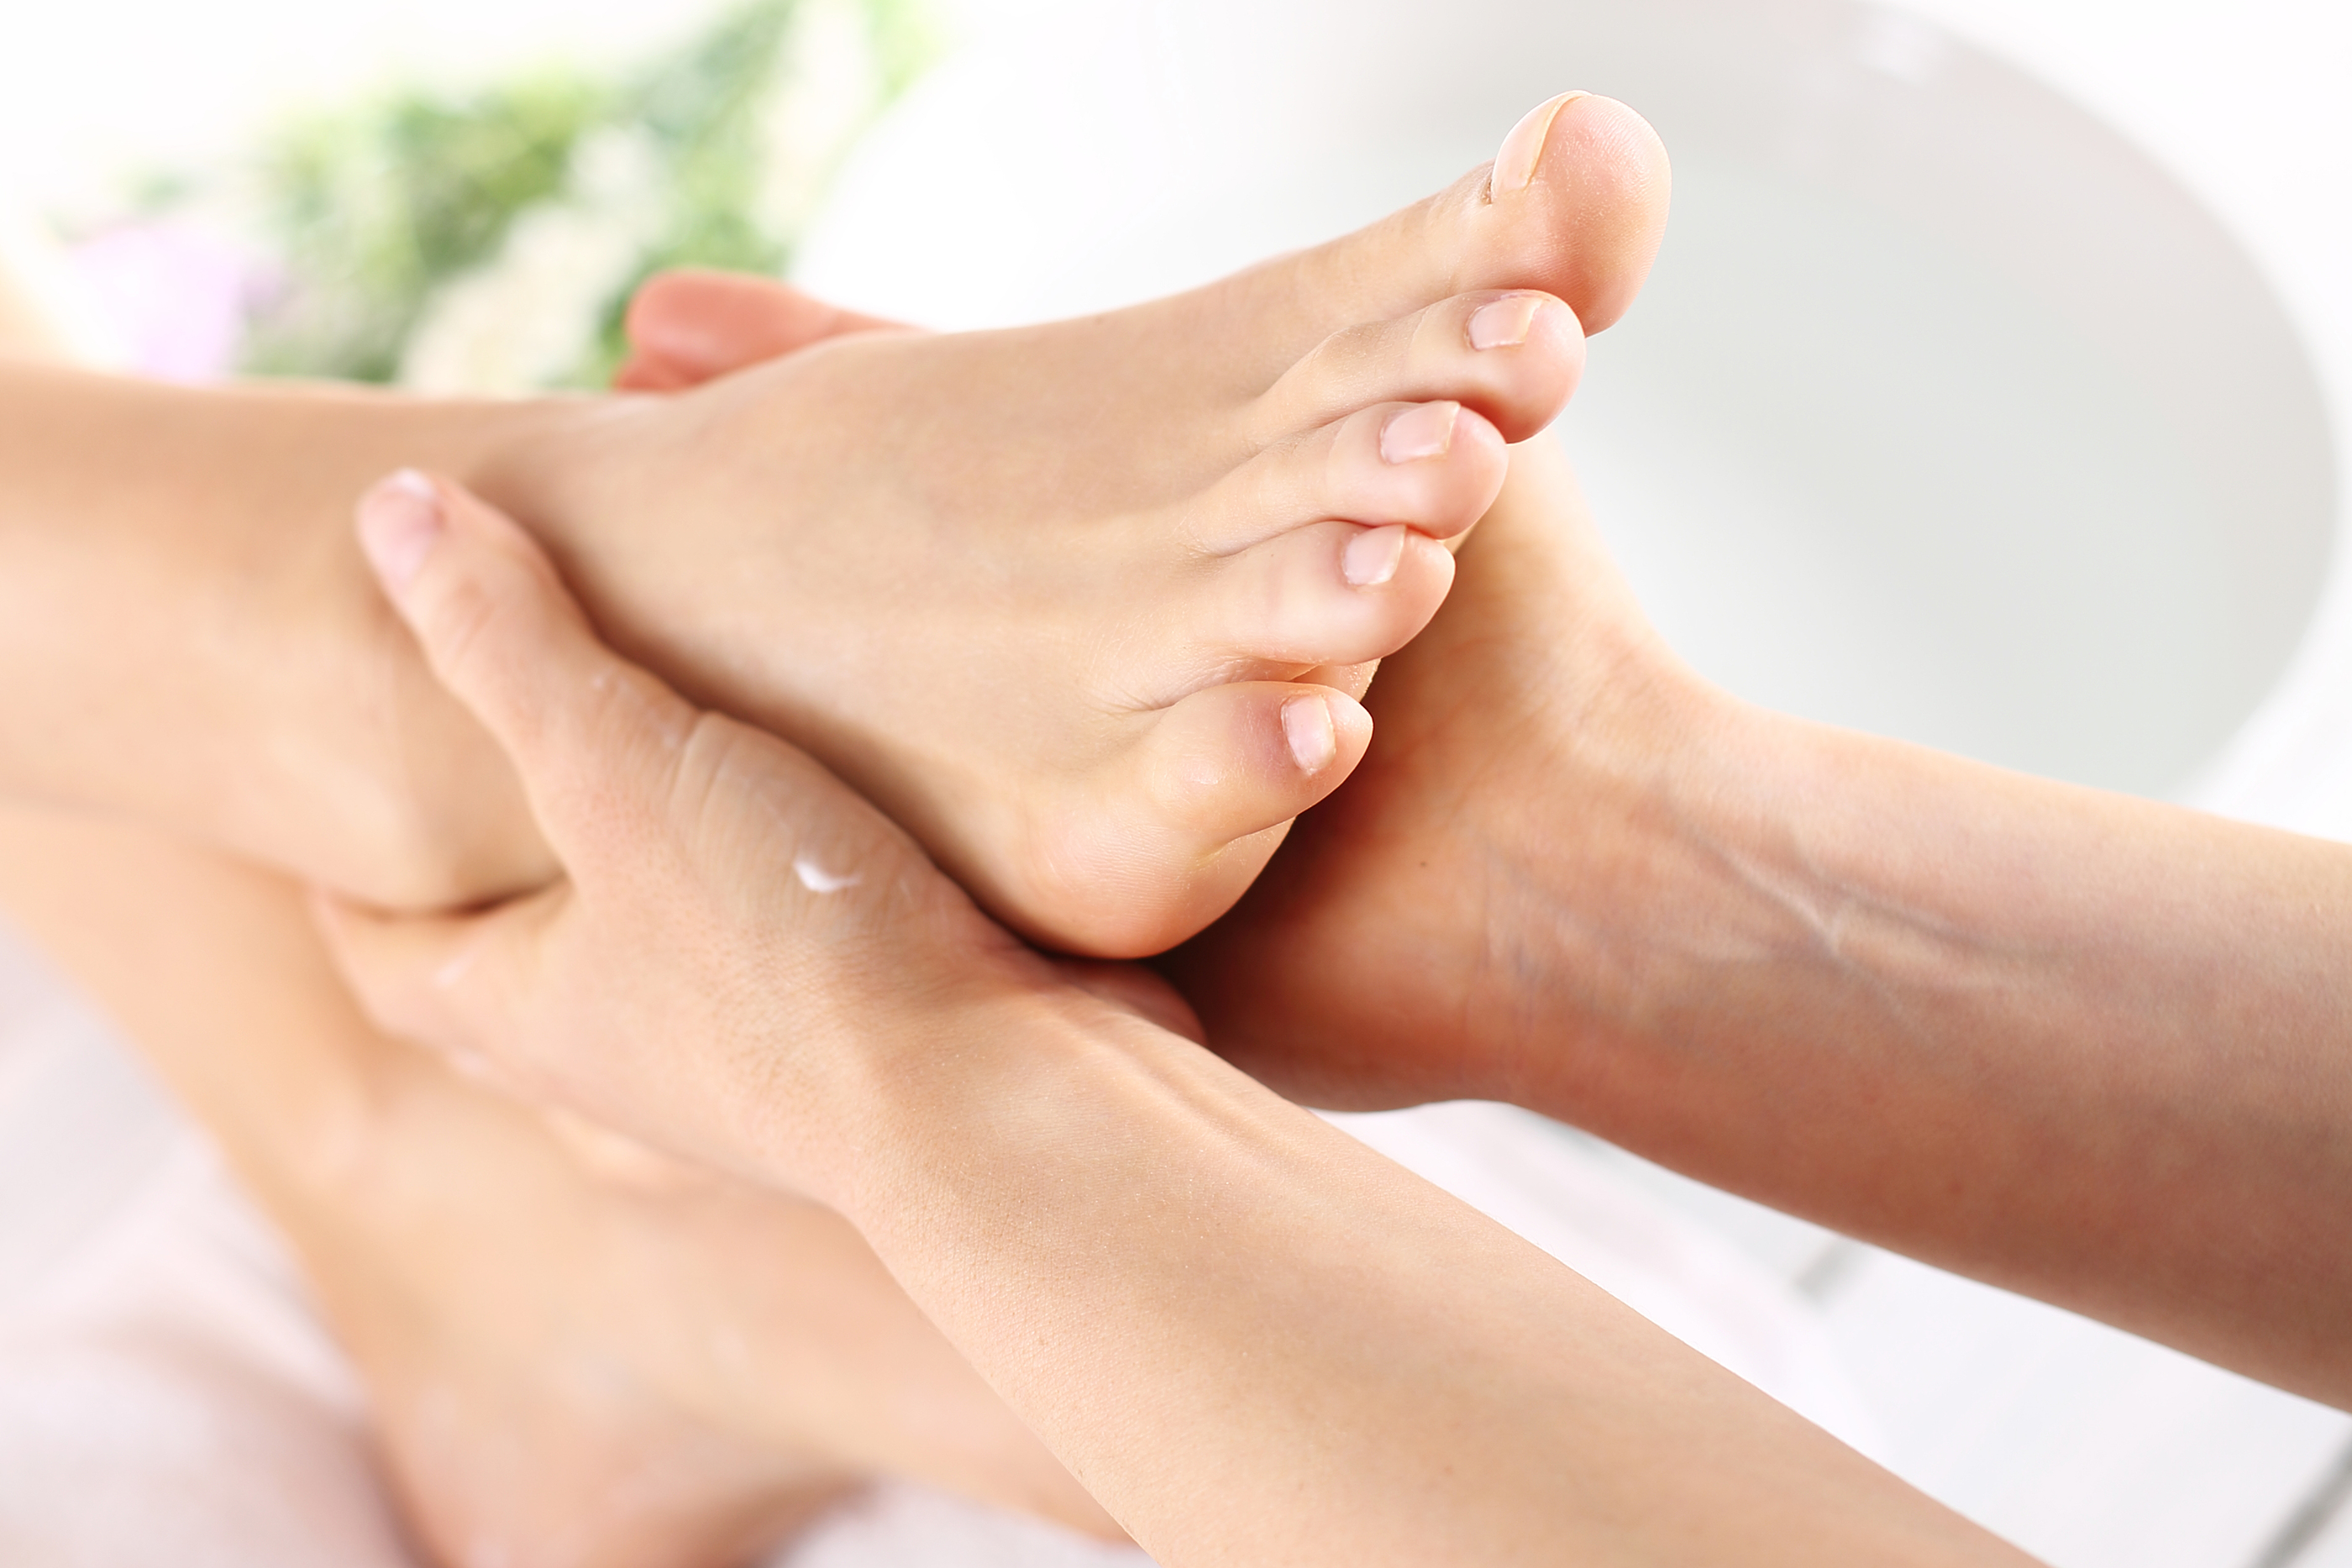 Masseuse massaging woman's foot.